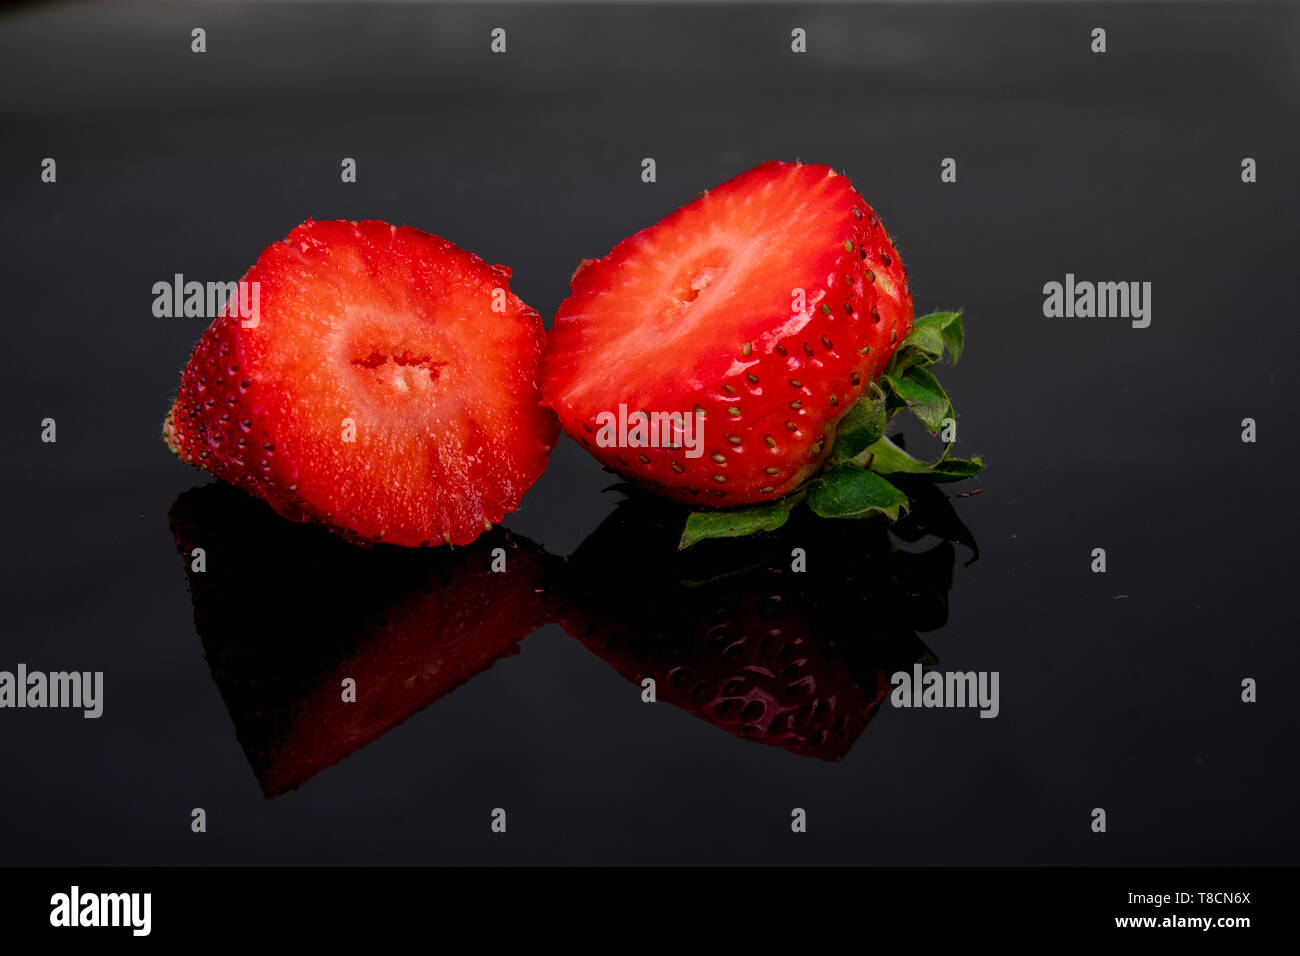 beautifully placed fresh delicious strawberries cut into two halves - Stock Image